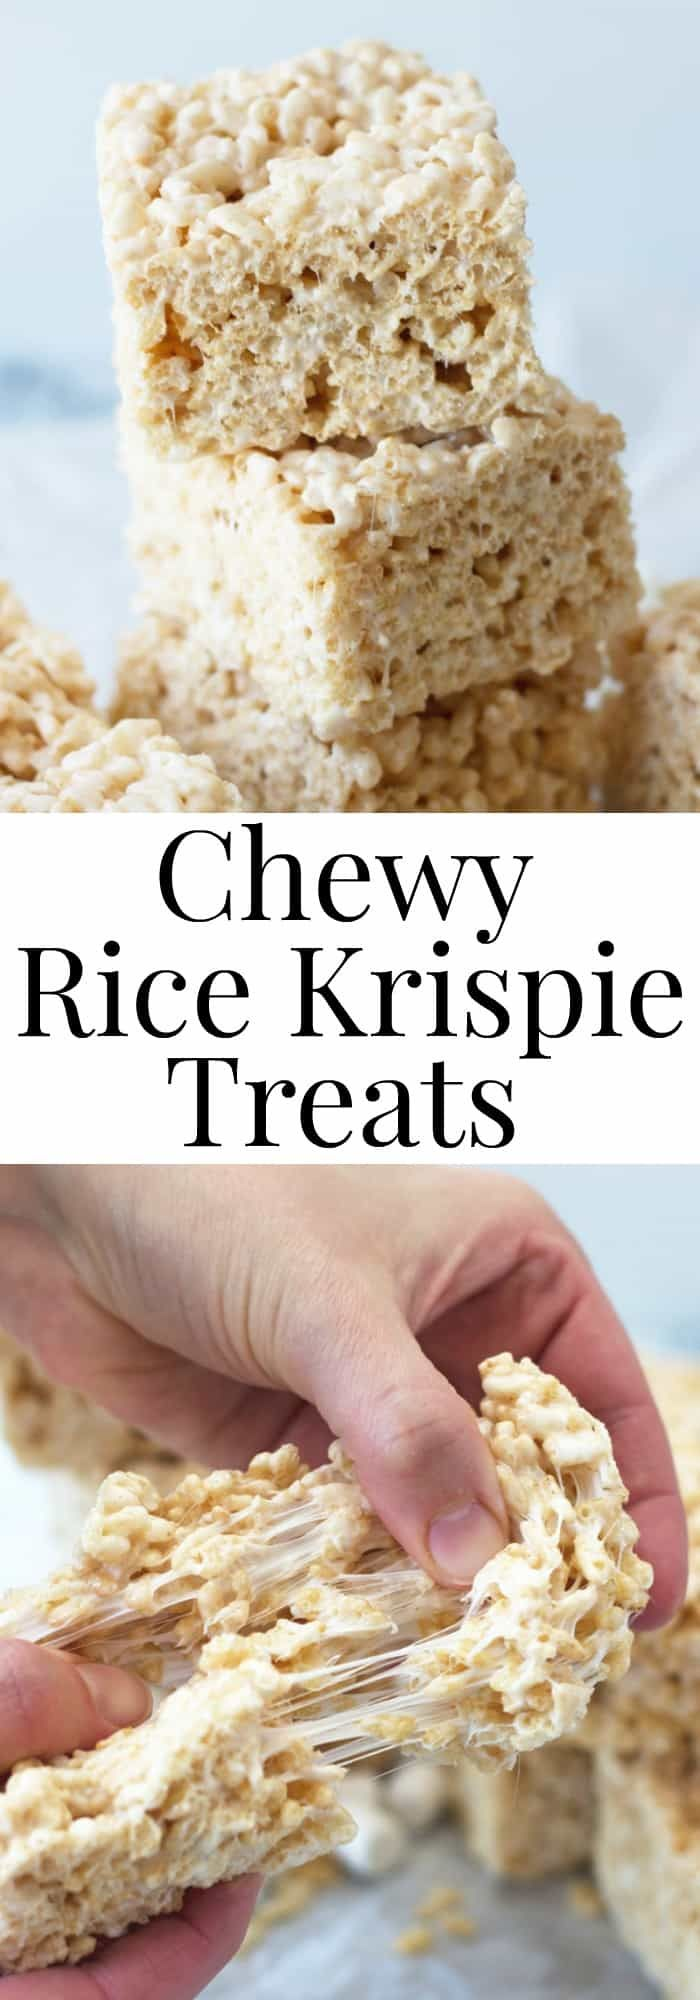 Chewy Rice Krispie Treats #crispytreats